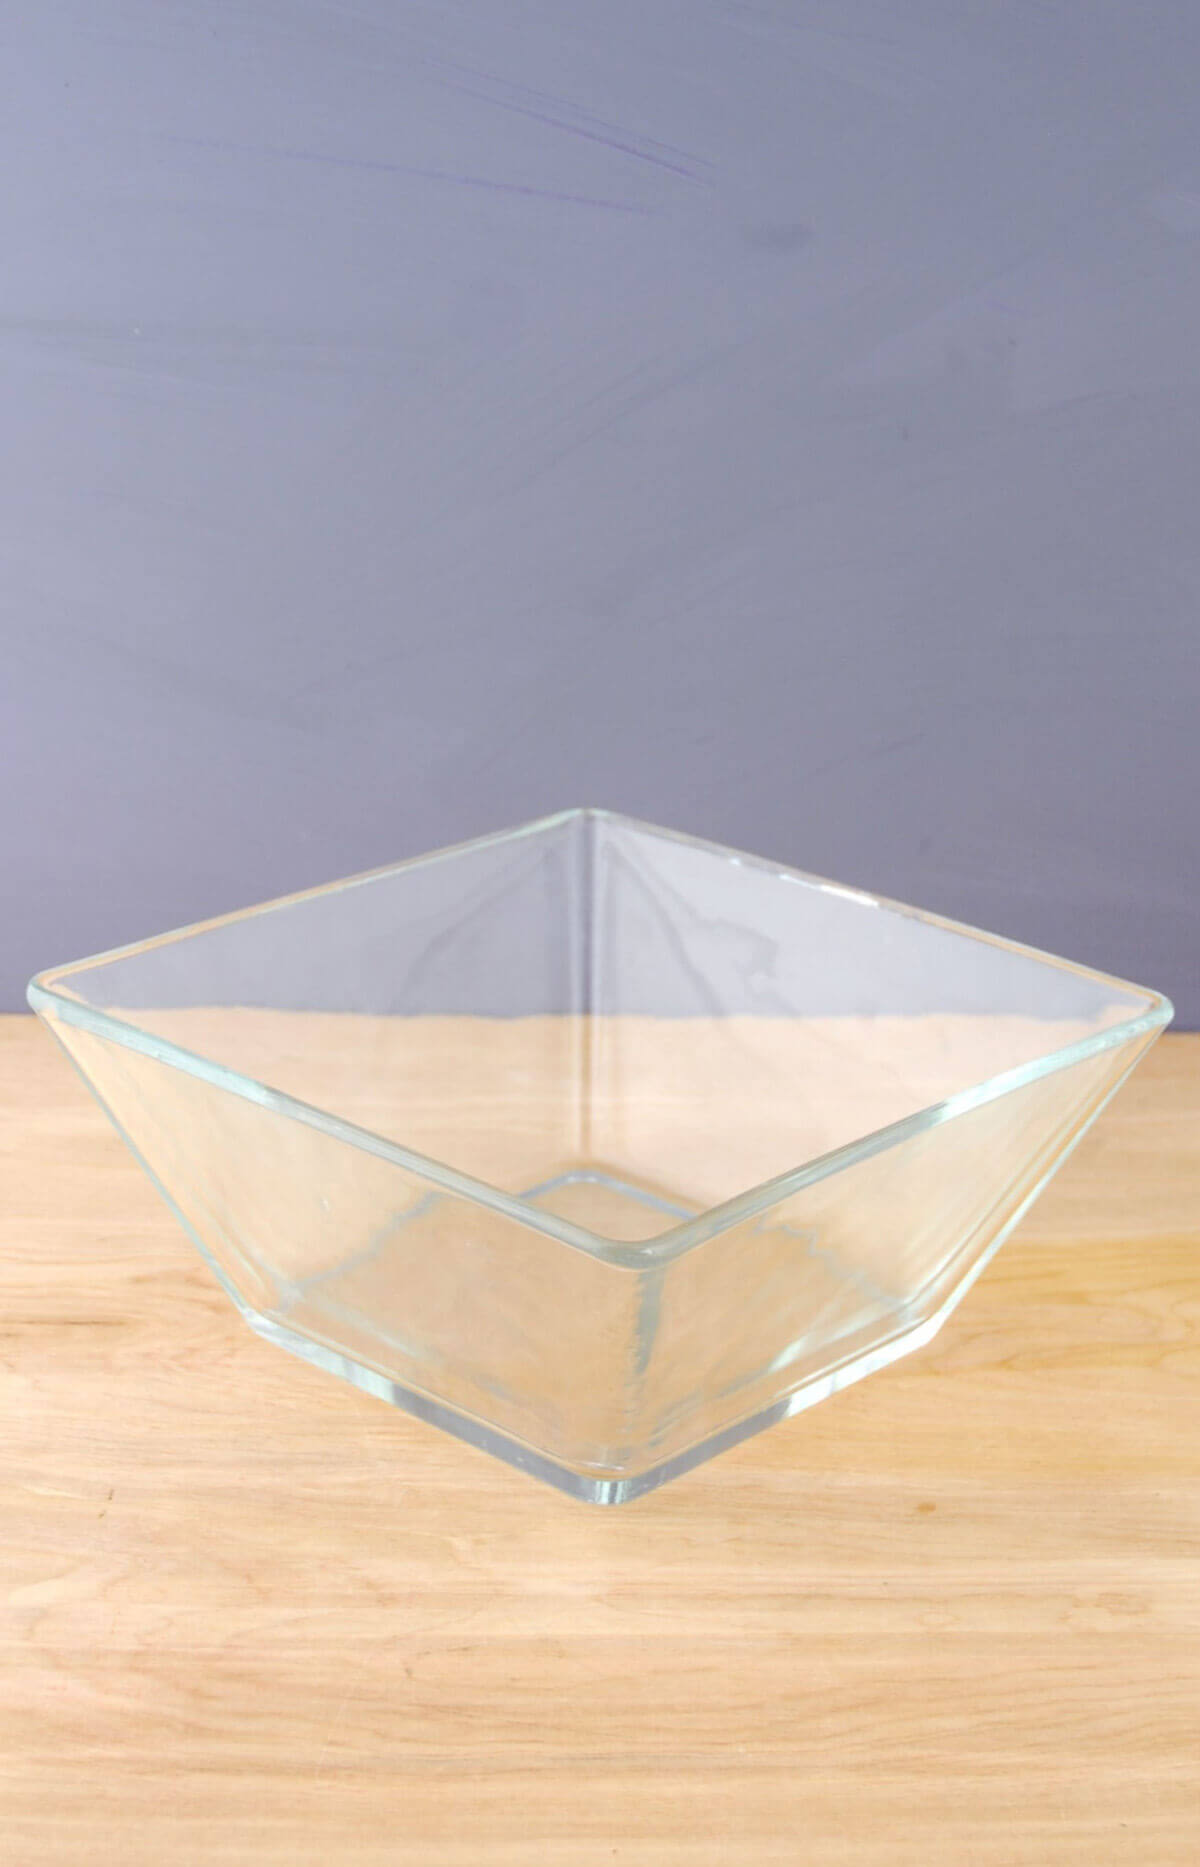 Tapered Square Bowl 9x9